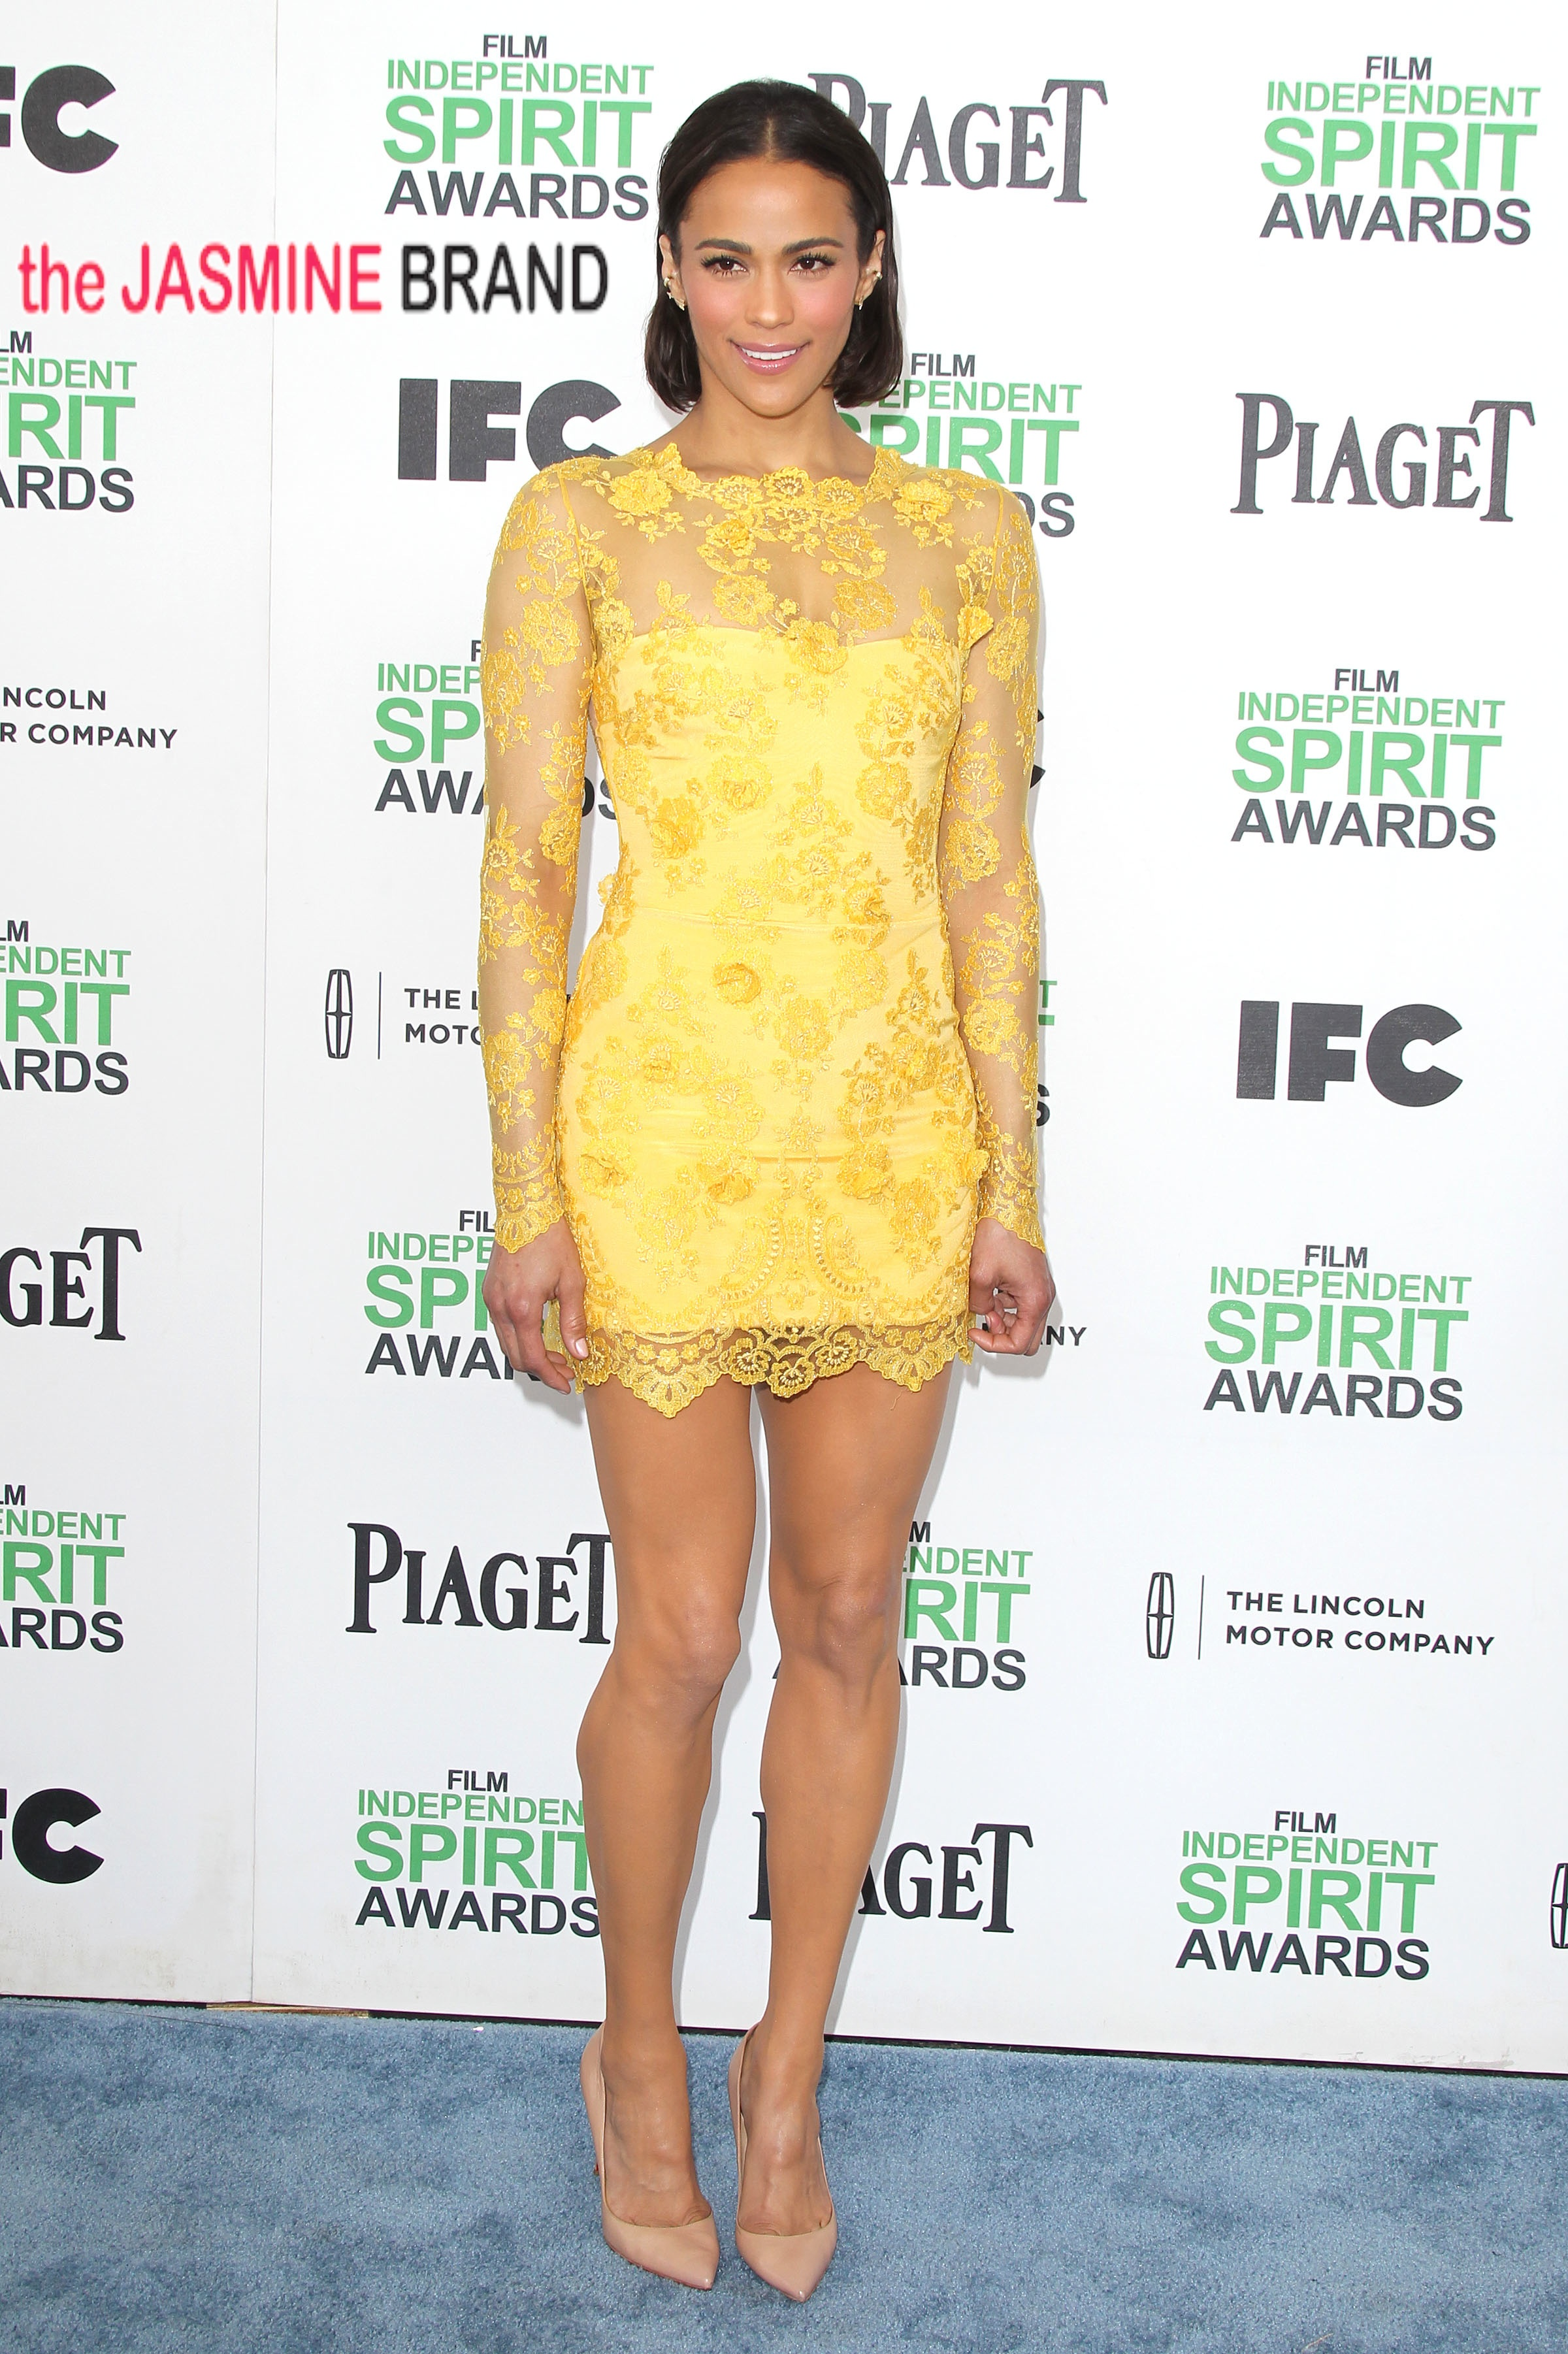 2014 Spirit Awards Best Fashion